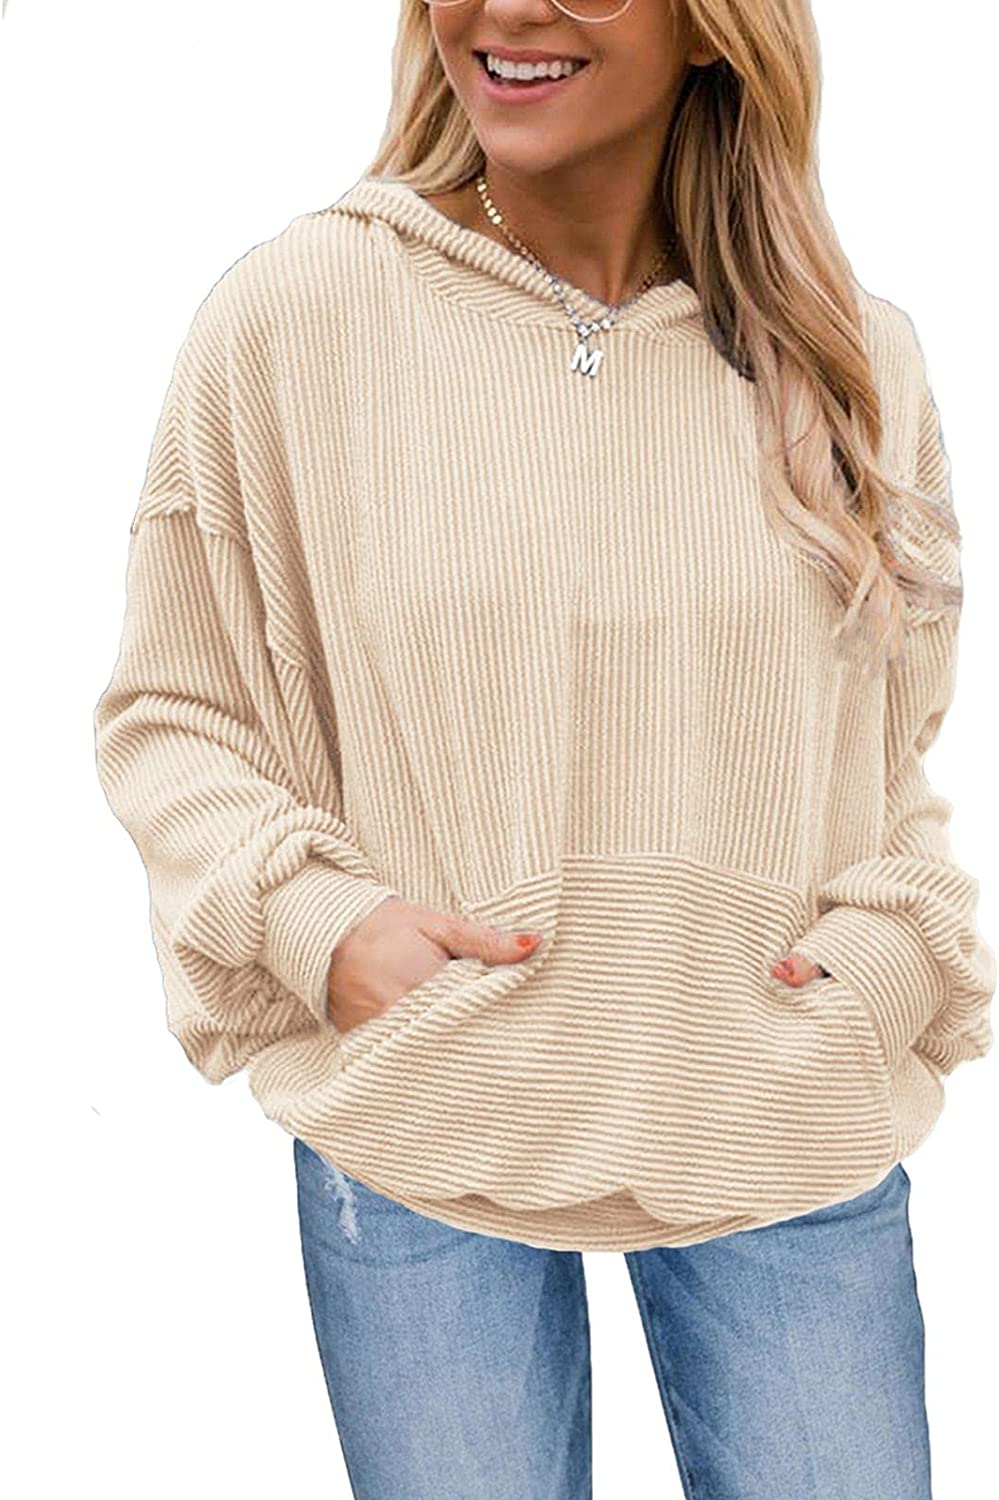 PINKMSTYLE Womens Oversized Hoodies Dolman Long Sleeve Shirts Solid Color Ribbed Pullover Sweatshirt with Pocket